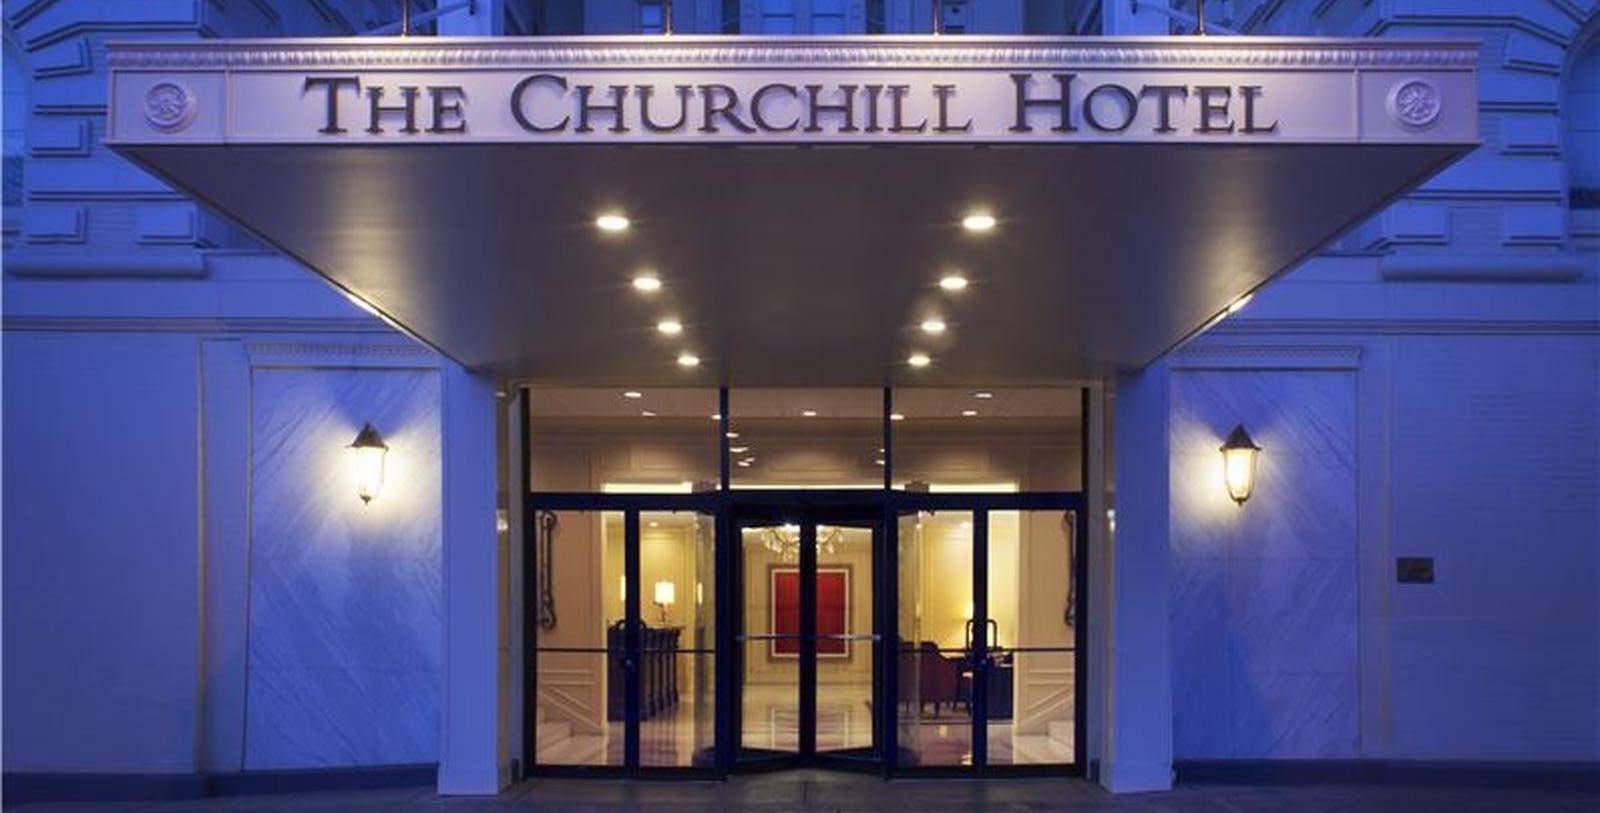 Image of Entrance The Churchill, 1906, Member of Historic Hotels of America, in Washington, DC, Special Offers, Discounted Rates, Families, Romantic Escape, Honeymoons, Anniversaries, Reunions